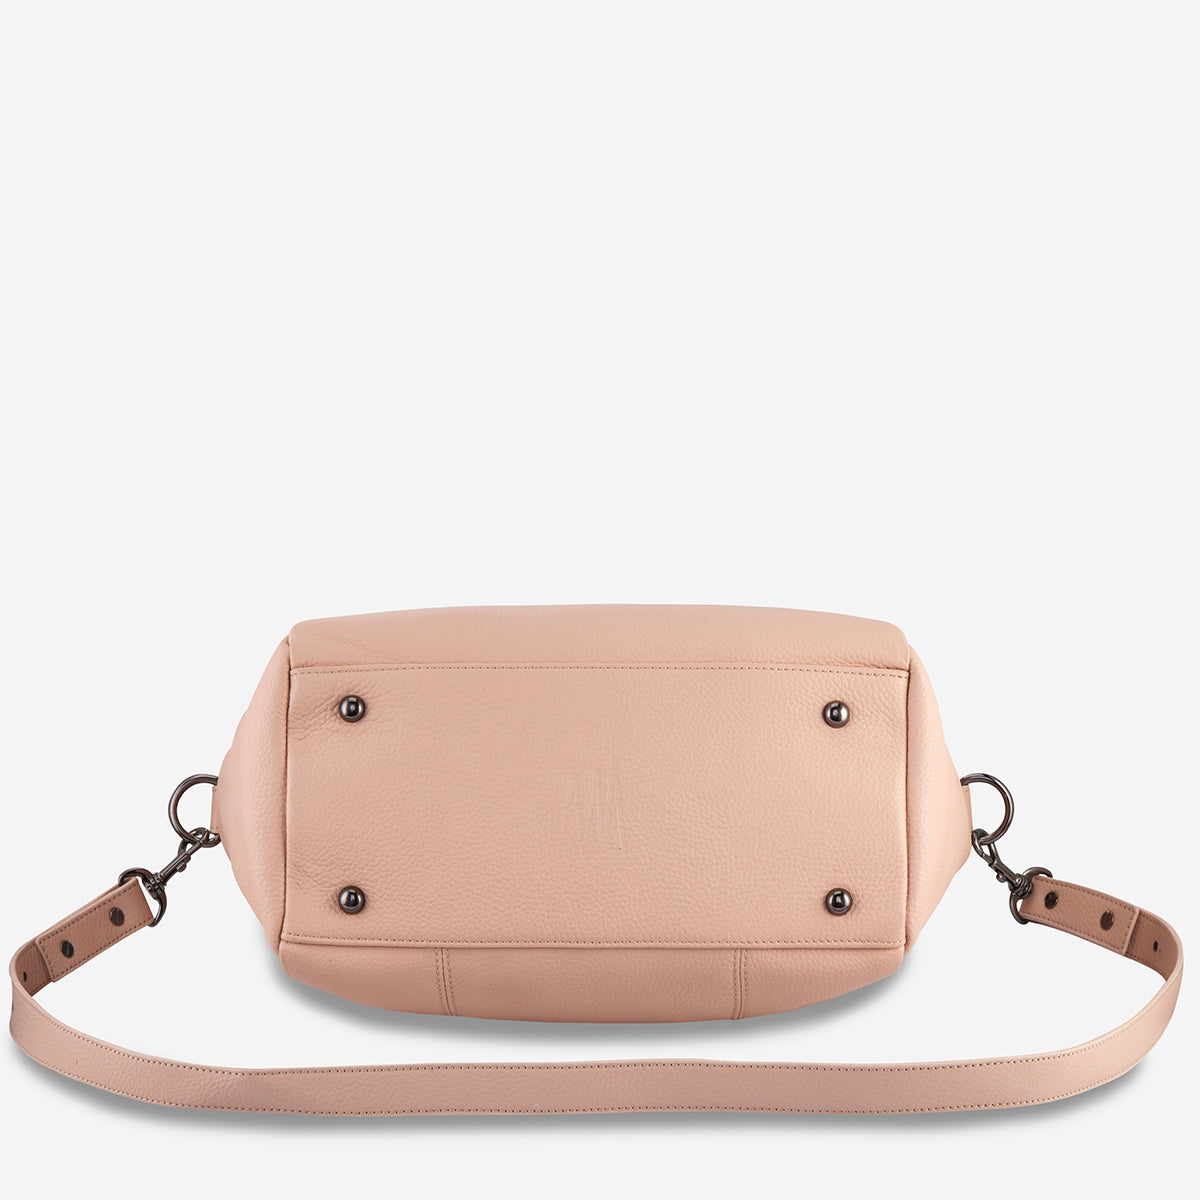 Status Anxiety Force of Being Women's Leather Bag - pink